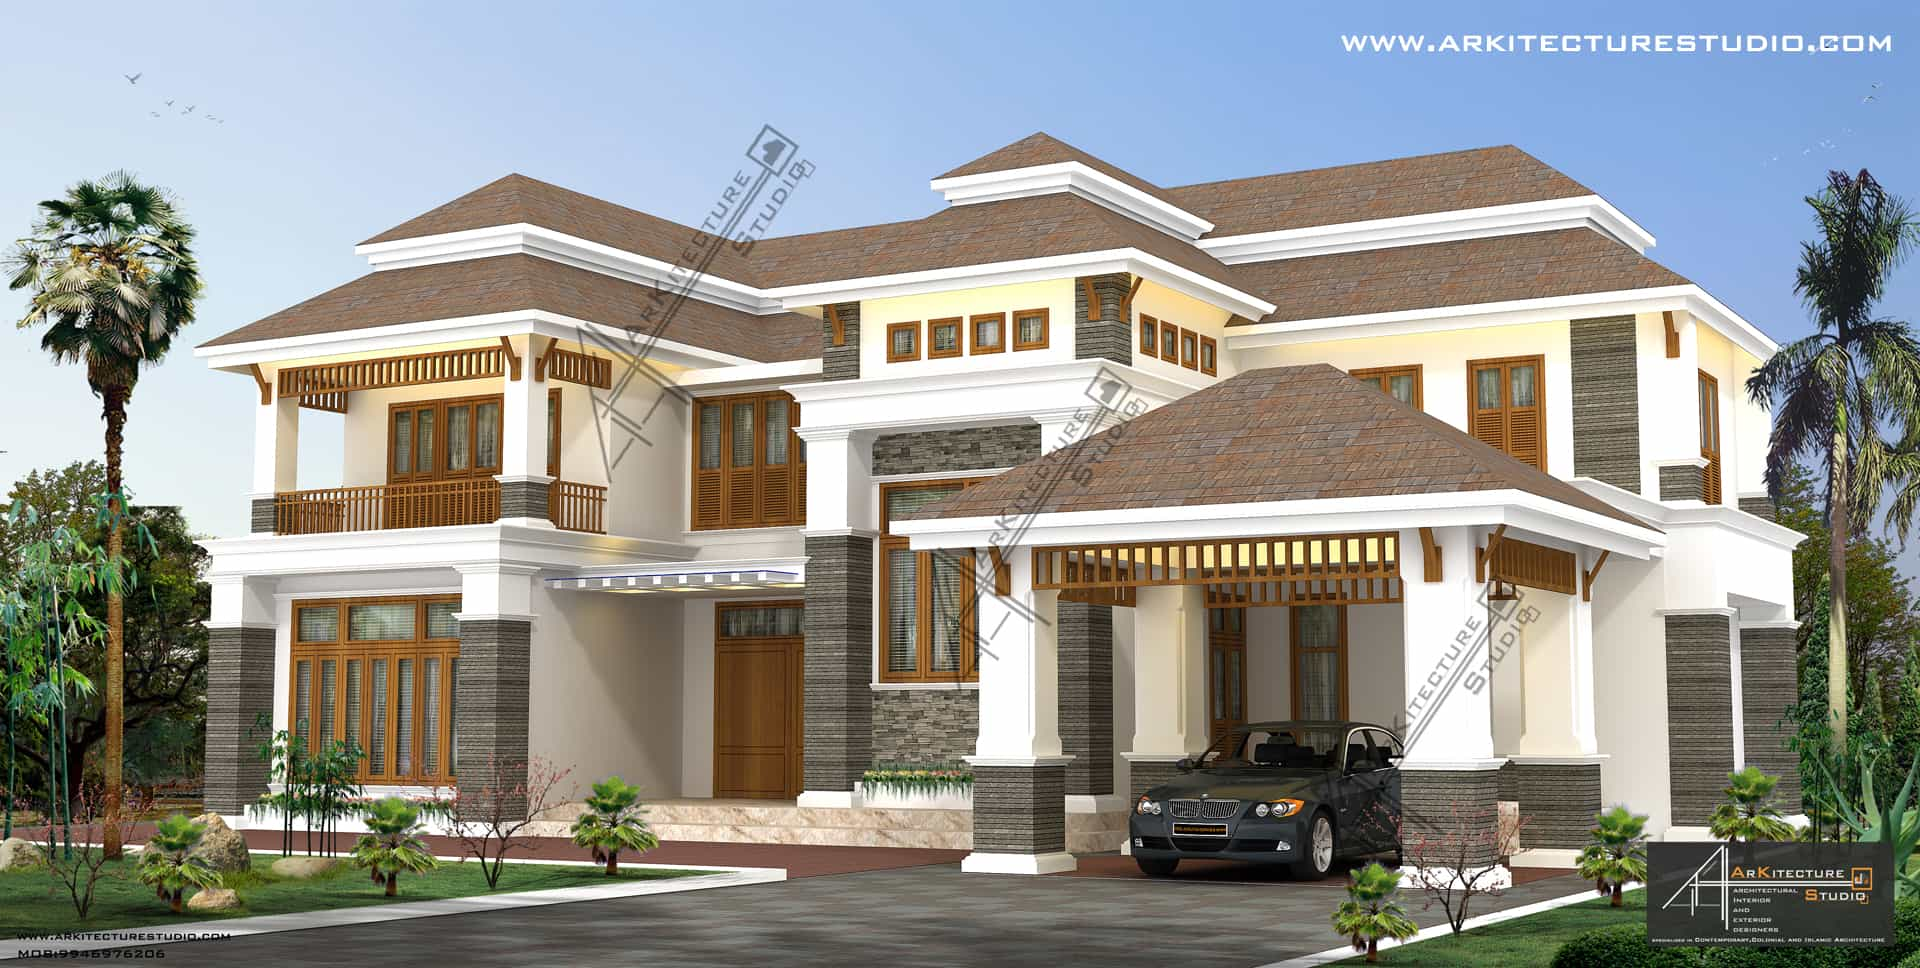 Colonial style house designs in kerala at 3500 sqft 5000 for House plans 3500 sq ft